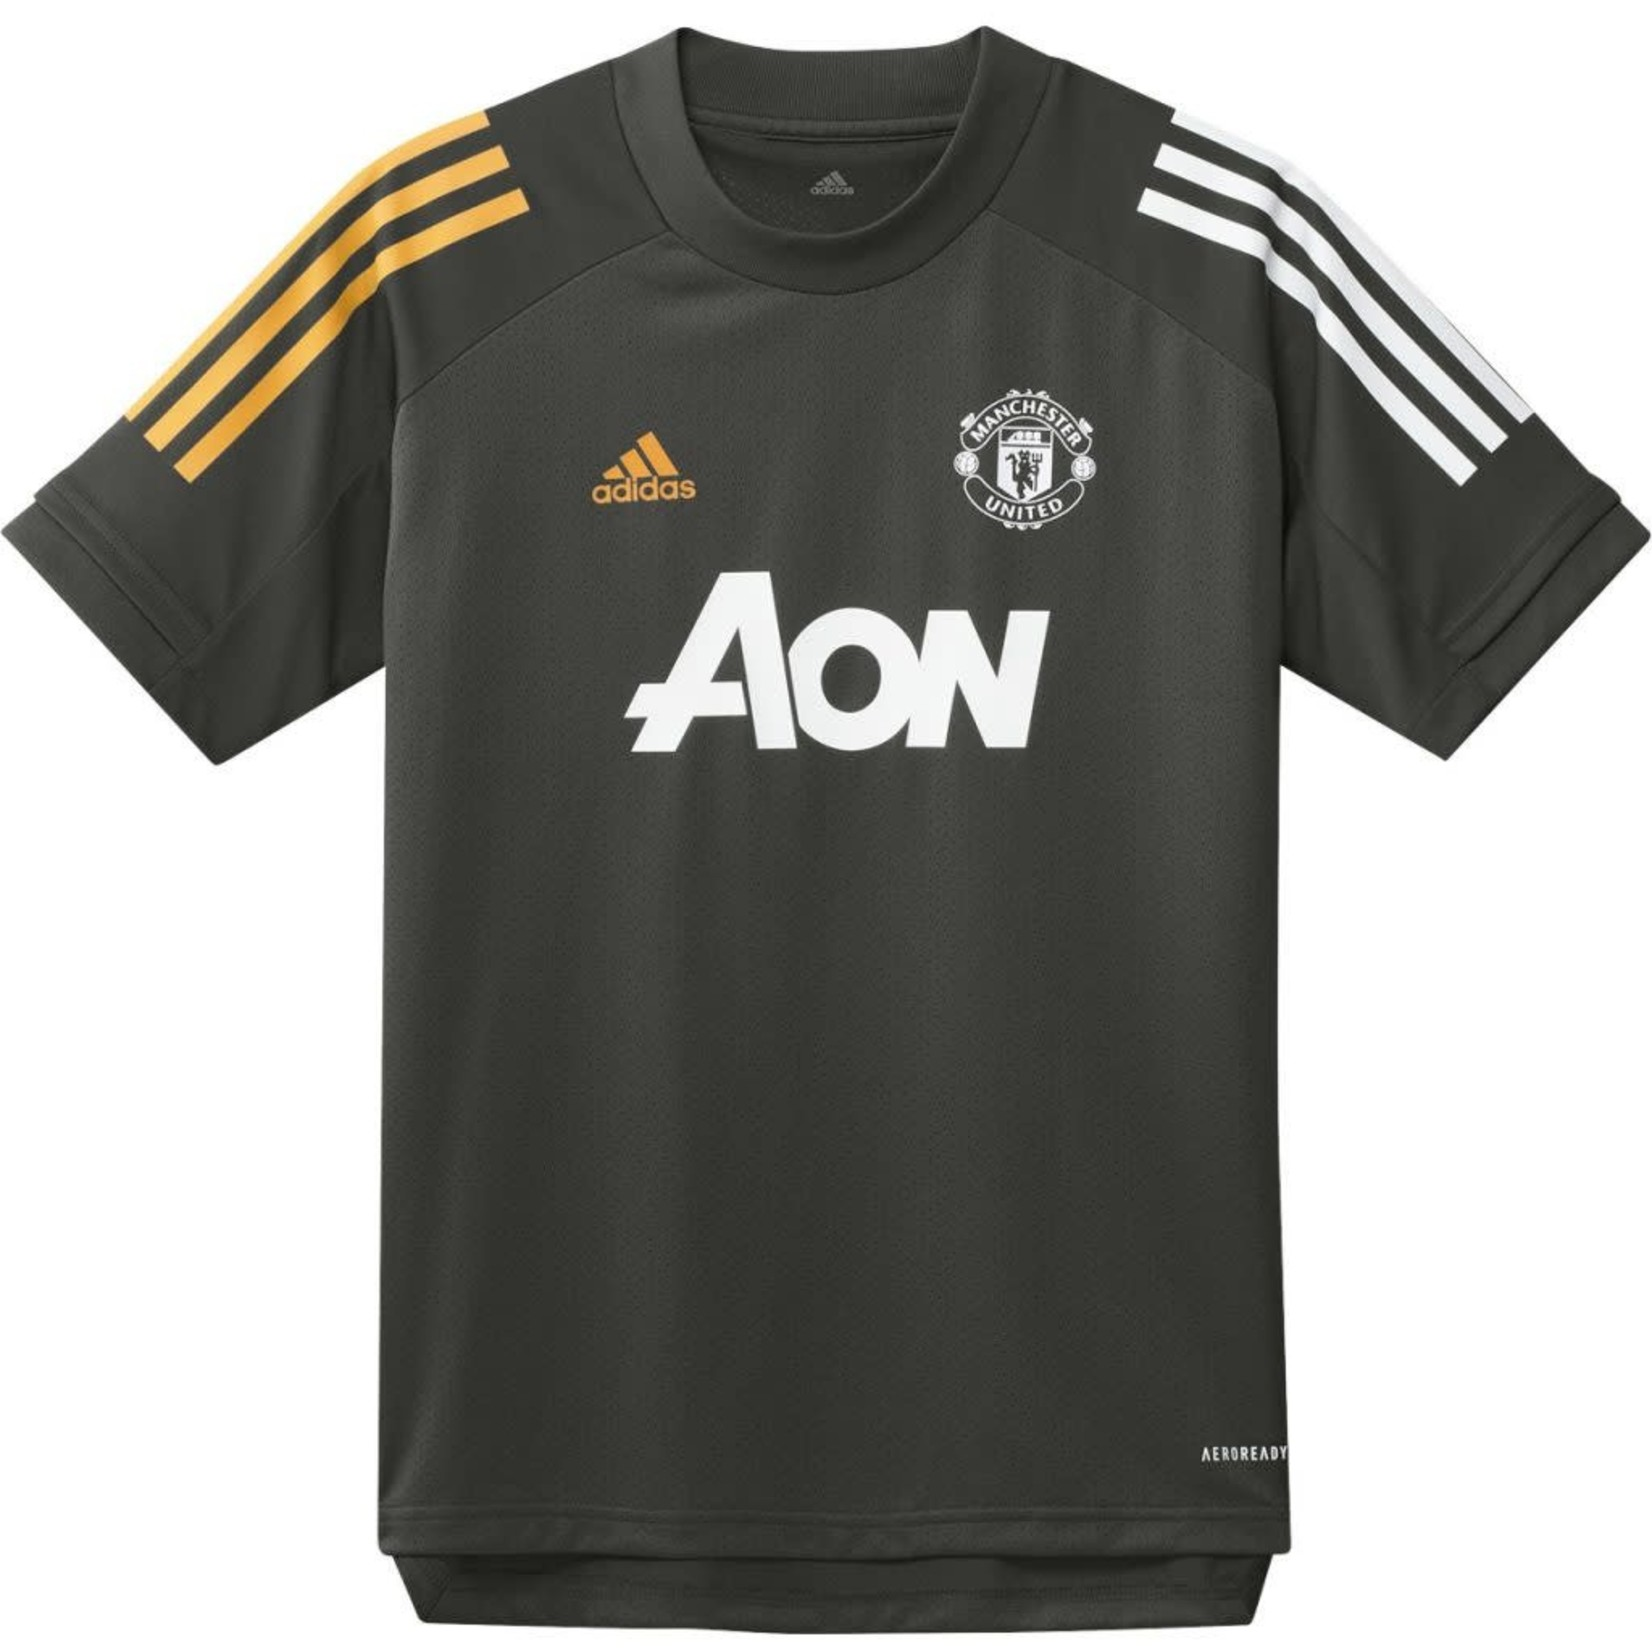 ADIDAS MANCHESTER UNITED 20/21 TRAINING JERSEY YOUTH